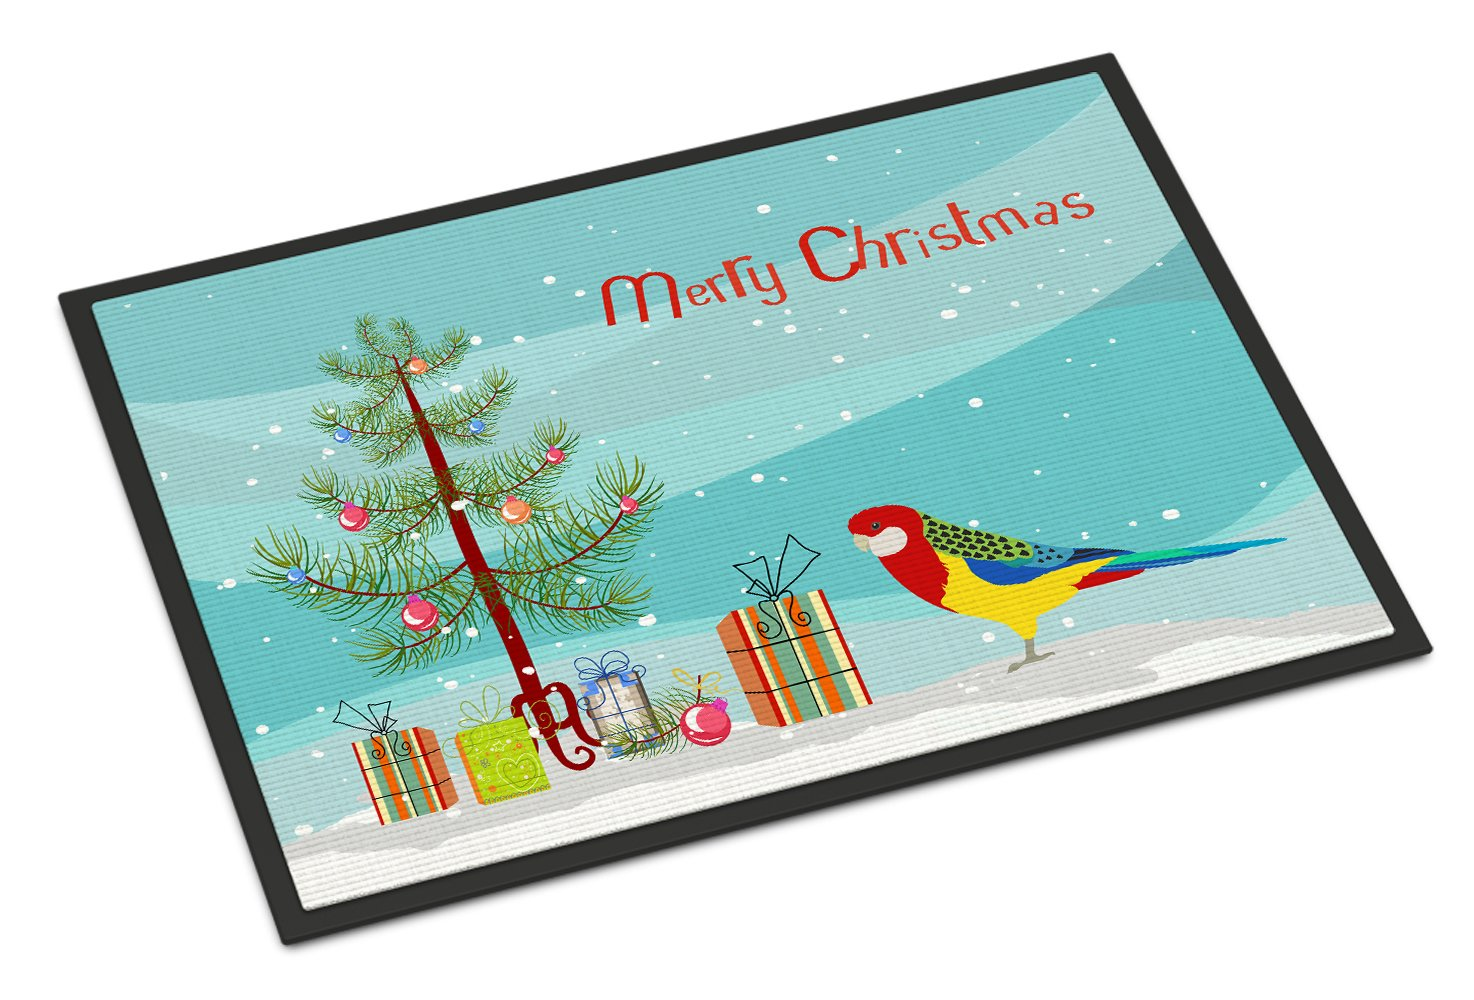 Rosella Merry Christmas Indoor or Outdoor Mat 24x36 CK4503JMAT by Caroline's Treasures